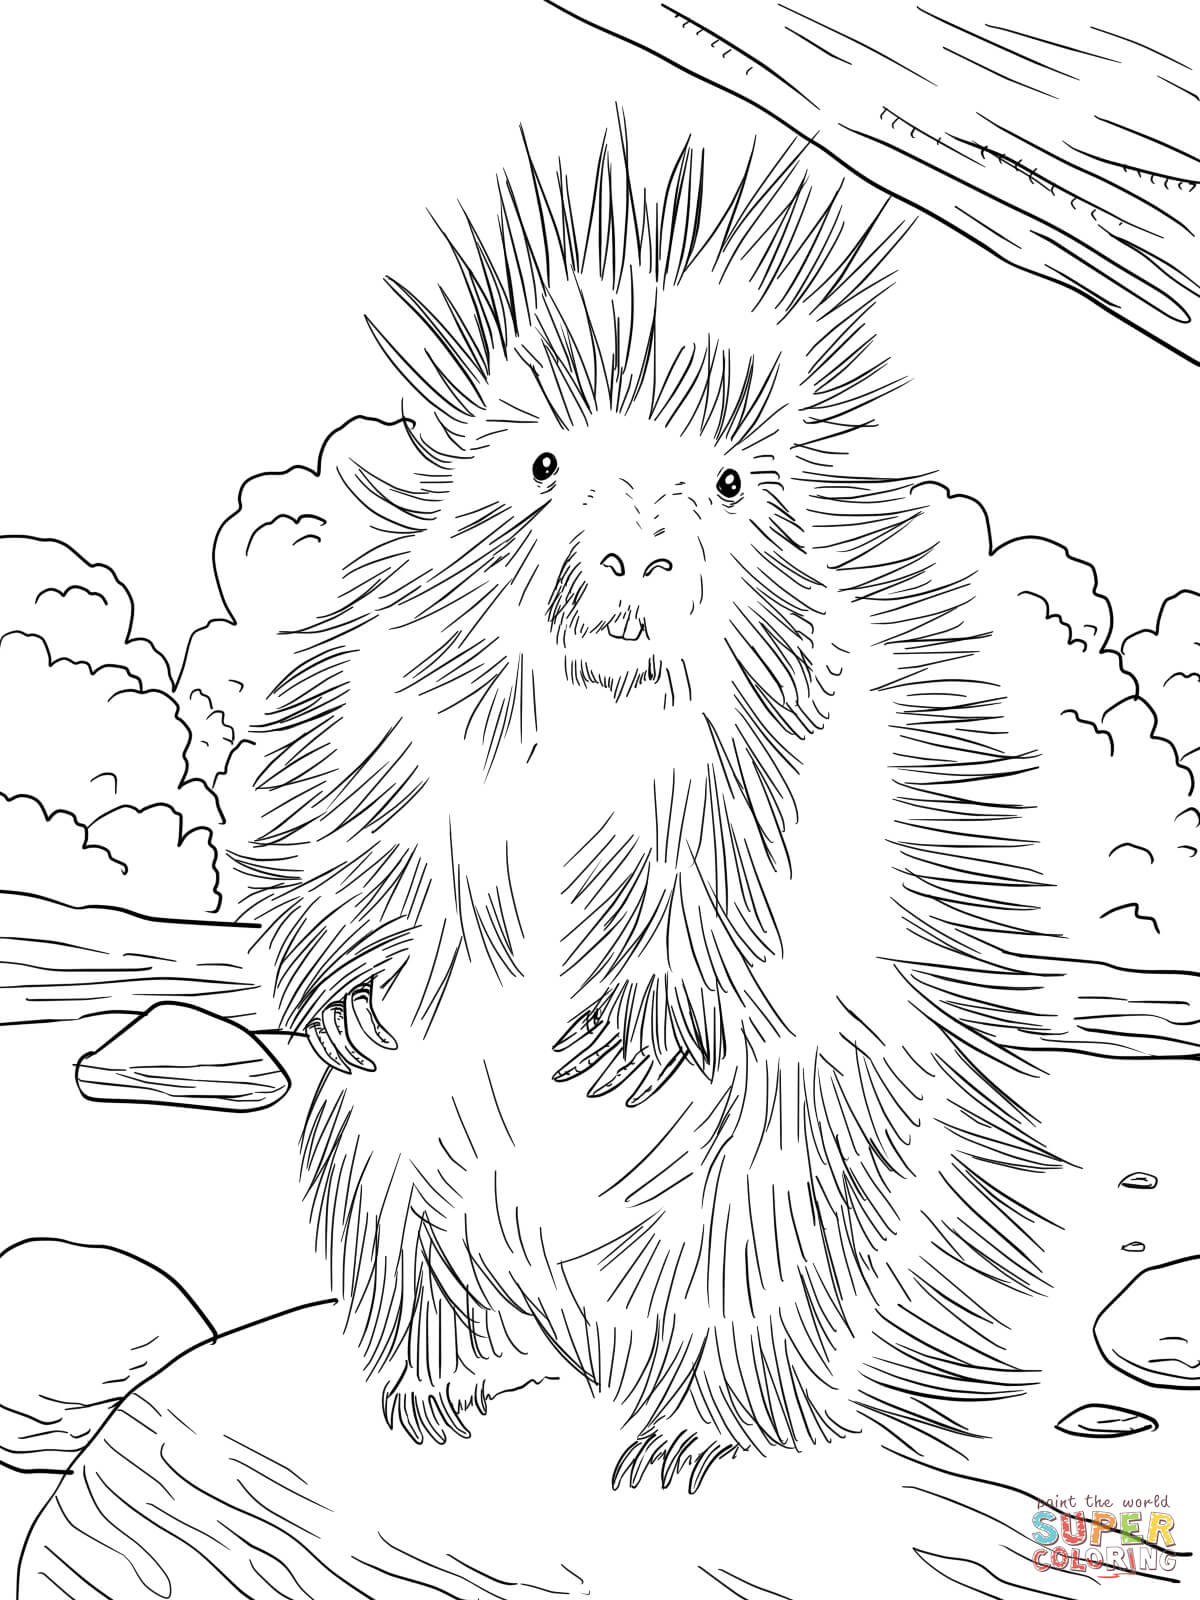 Porcupine Drawing at GetDrawings